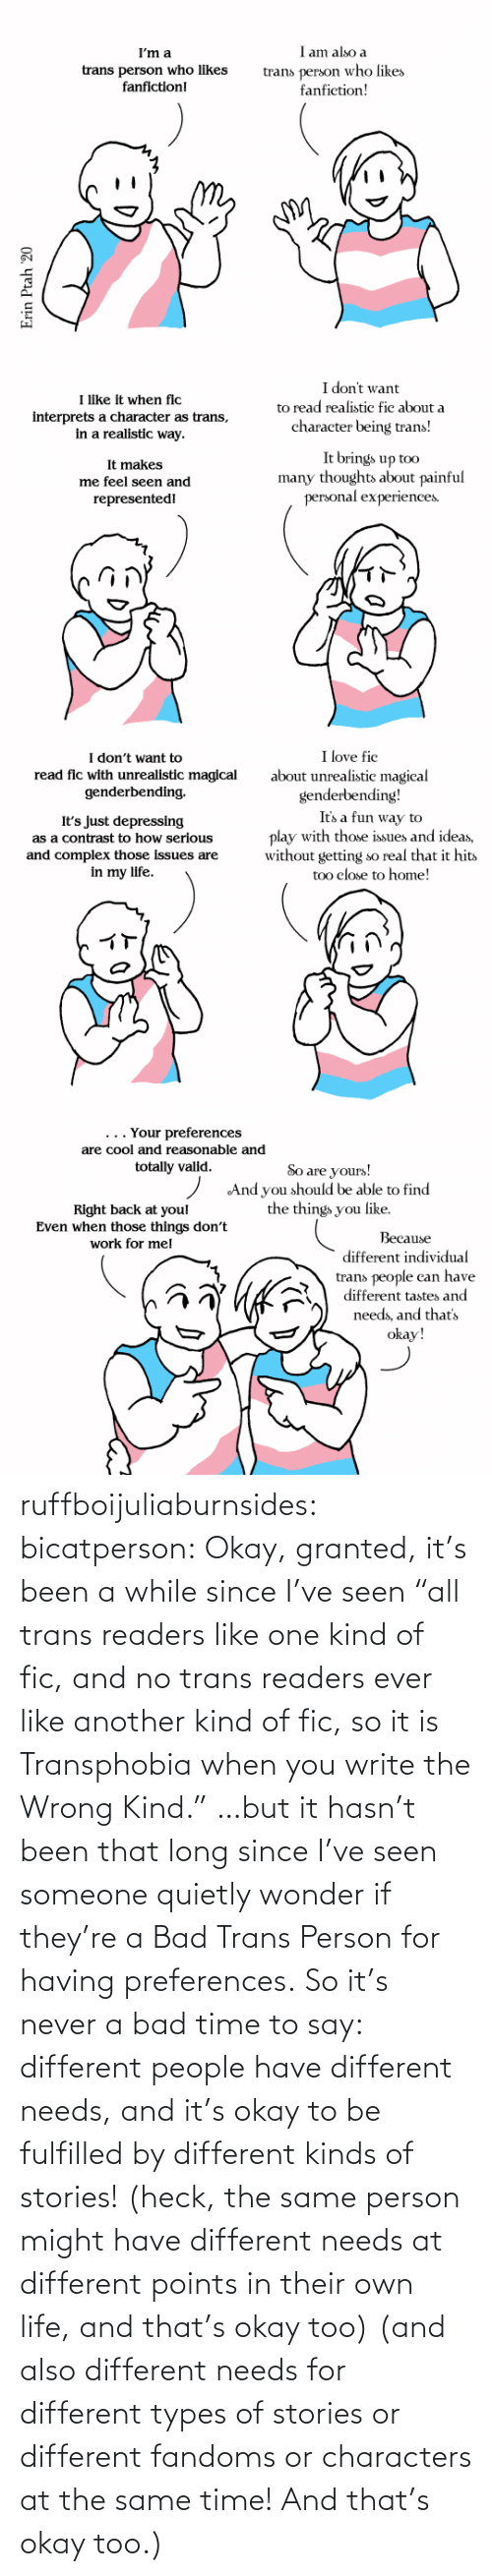 "Wonder: ruffboijuliaburnsides: bicatperson:   Okay, granted, it's been a while since I've seen ""all trans readers  like one kind of fic, and no trans readers ever like another kind of  fic, so it is Transphobia when you write the Wrong Kind."" …but it hasn't been that long since I've seen someone quietly wonder if they're a Bad Trans Person for having preferences. So  it's never a bad time to say: different people have different needs,  and it's okay to be fulfilled by different kinds of stories! (heck, the same person might have different needs at different points in their own life, and that's okay too)    (and also different needs for different types of stories or different fandoms or characters at the same time!  And that's okay too.)"